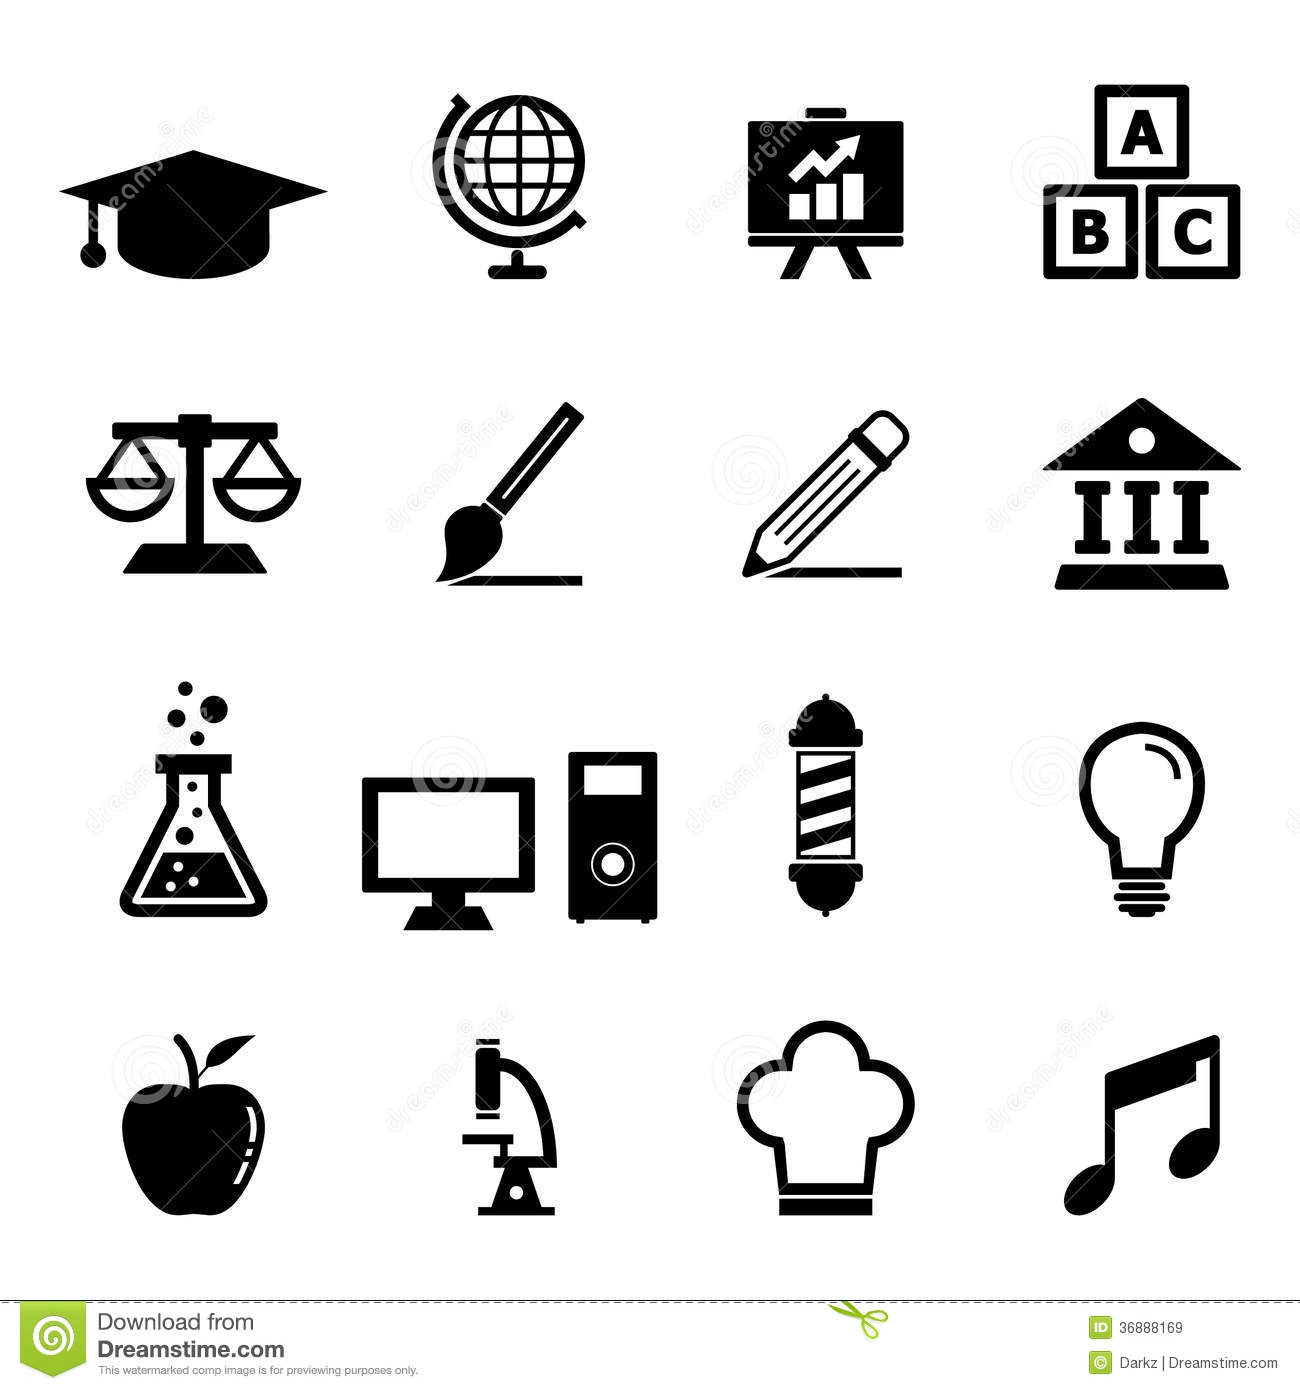 map z with Royalty Free Stock Images Education Icon Set Your Design Image36888169 on Stromamap further 2423460216 further D 31 M blank chad further 3860010514 as well Royalty Free Stock Images Education Icon Set Your Design Image36888169.